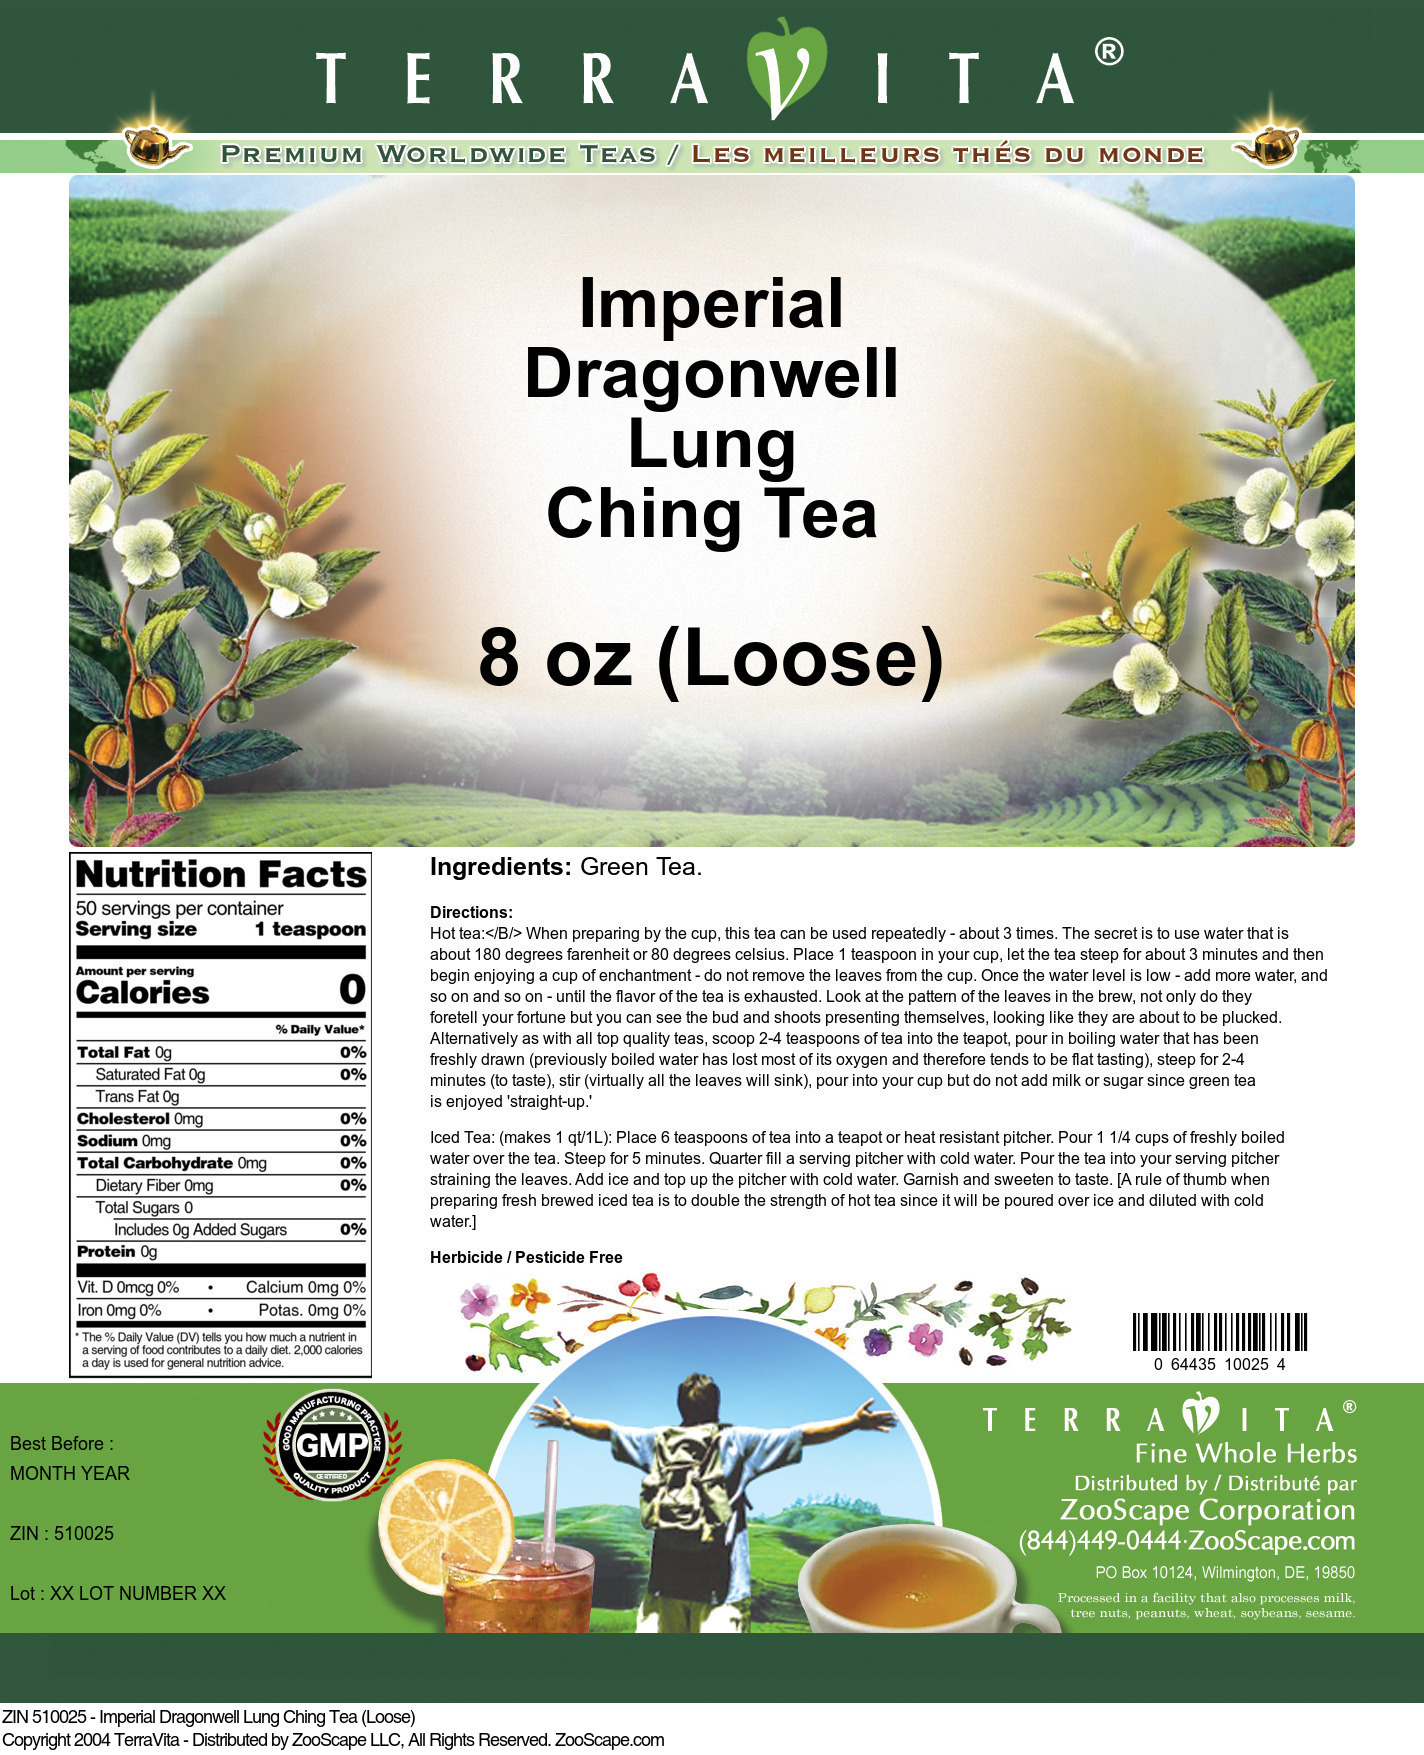 Imperial Dragonwell Lung Ching Tea (Loose)